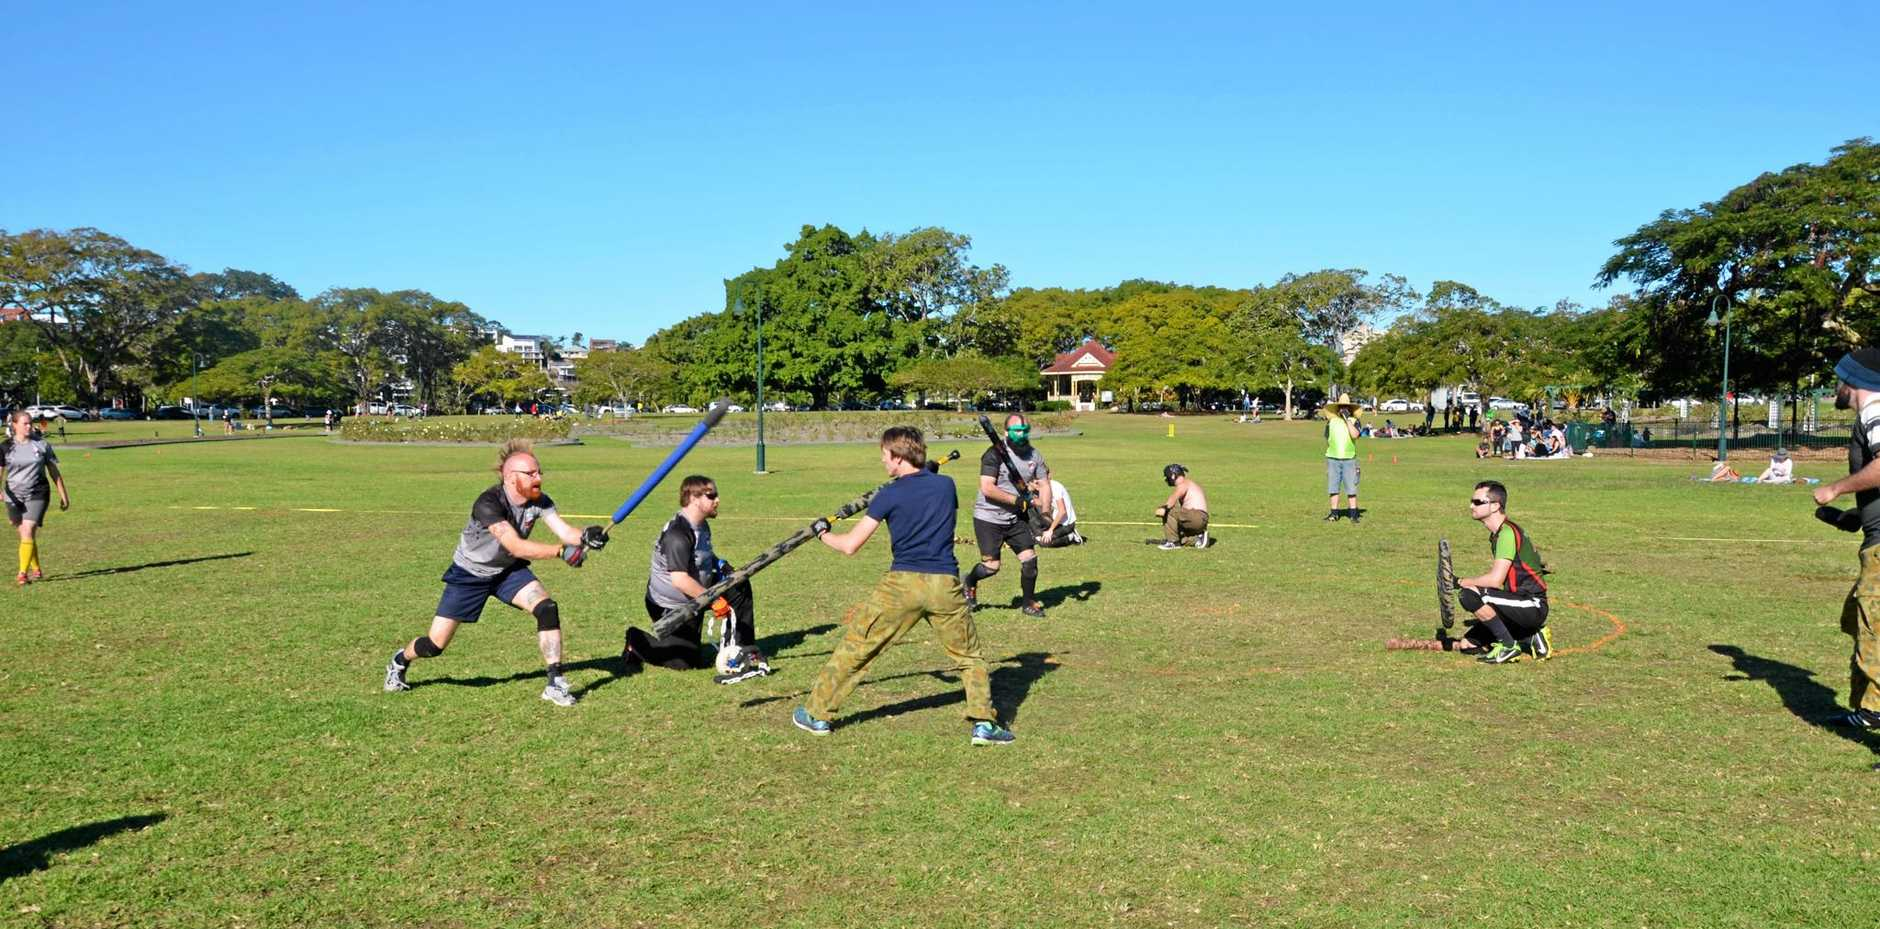 ACTION PACKED: Jugger is not a sport for the faint-hearted.